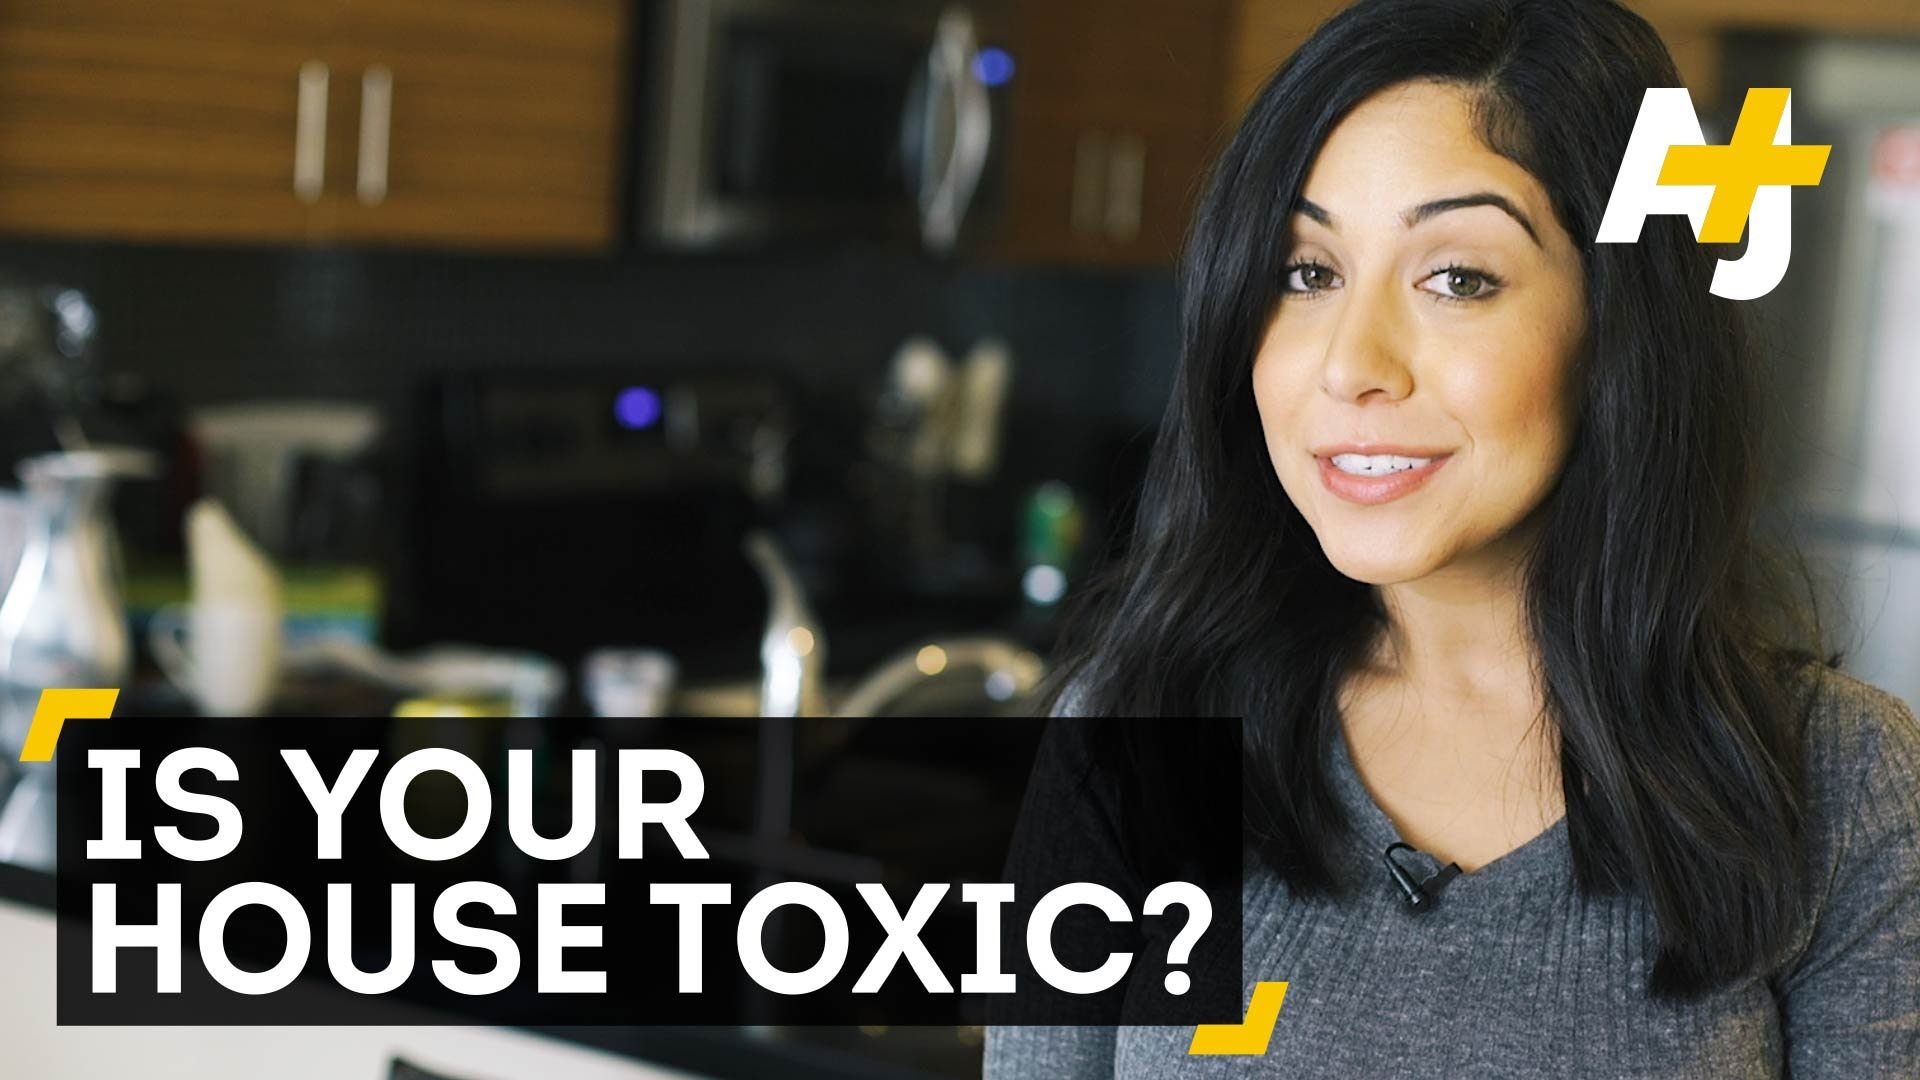 Is your house toxic? The shampoo in your shower, the foam in your mattress, your TV, couch, carpet, pillows...chemicals are everywhere. And they aren't all safe.